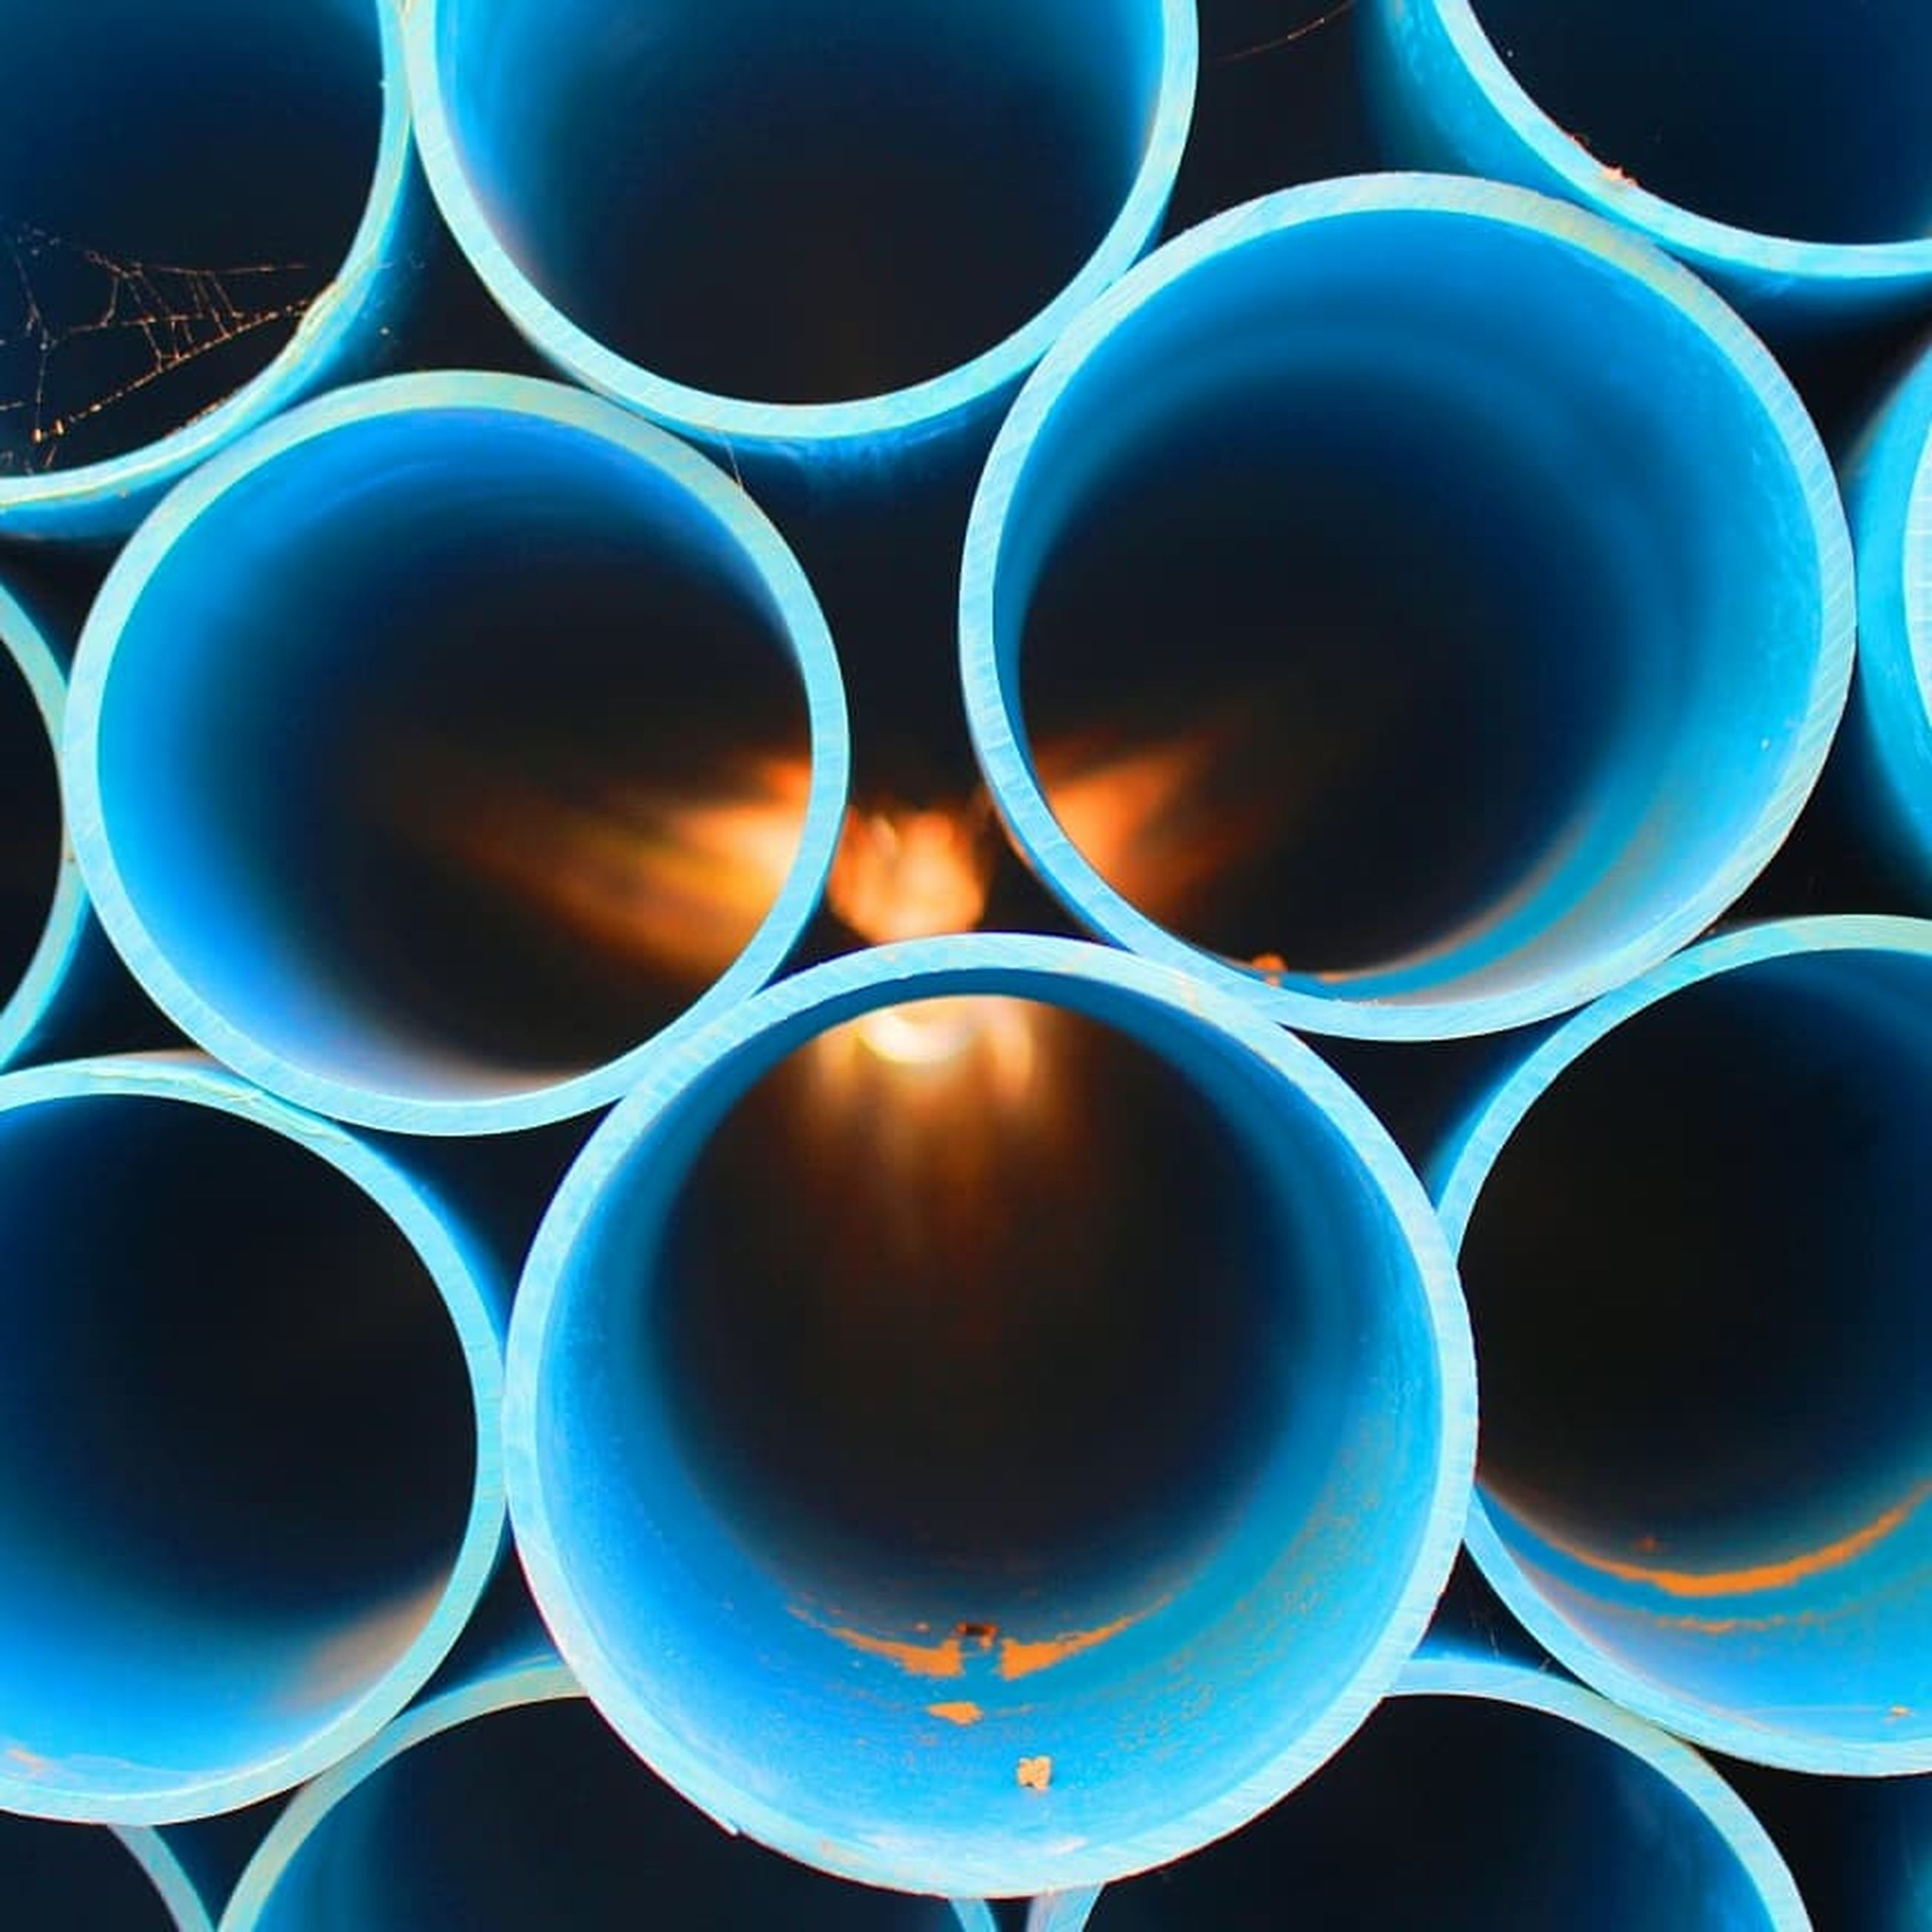 circle, geometric shape, shape, close-up, no people, pipe - tube, backgrounds, design, full frame, stack, pattern, abstract, large group of objects, blue, industry, group of objects, fuel and power generation, day, indoors, blue background